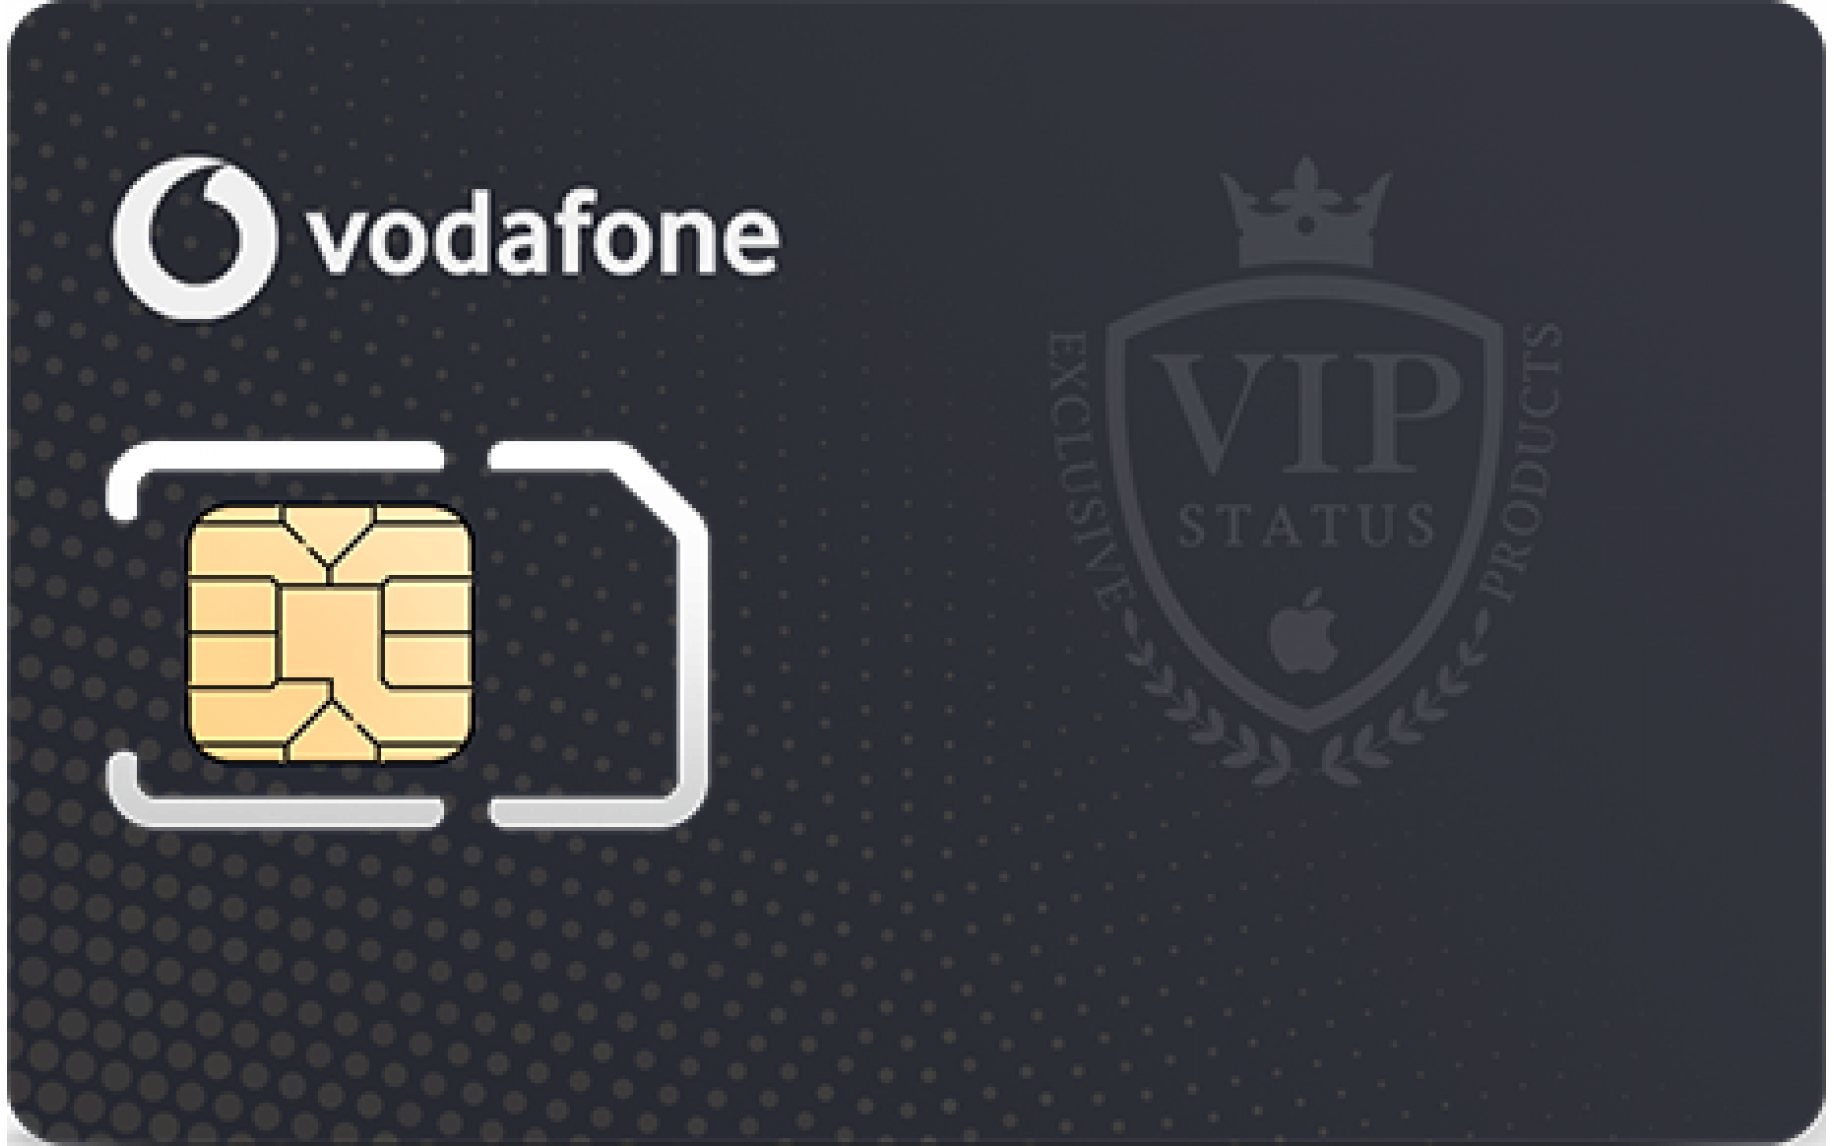 Exclusive Vodafone phone number: +380X64444999 image 1